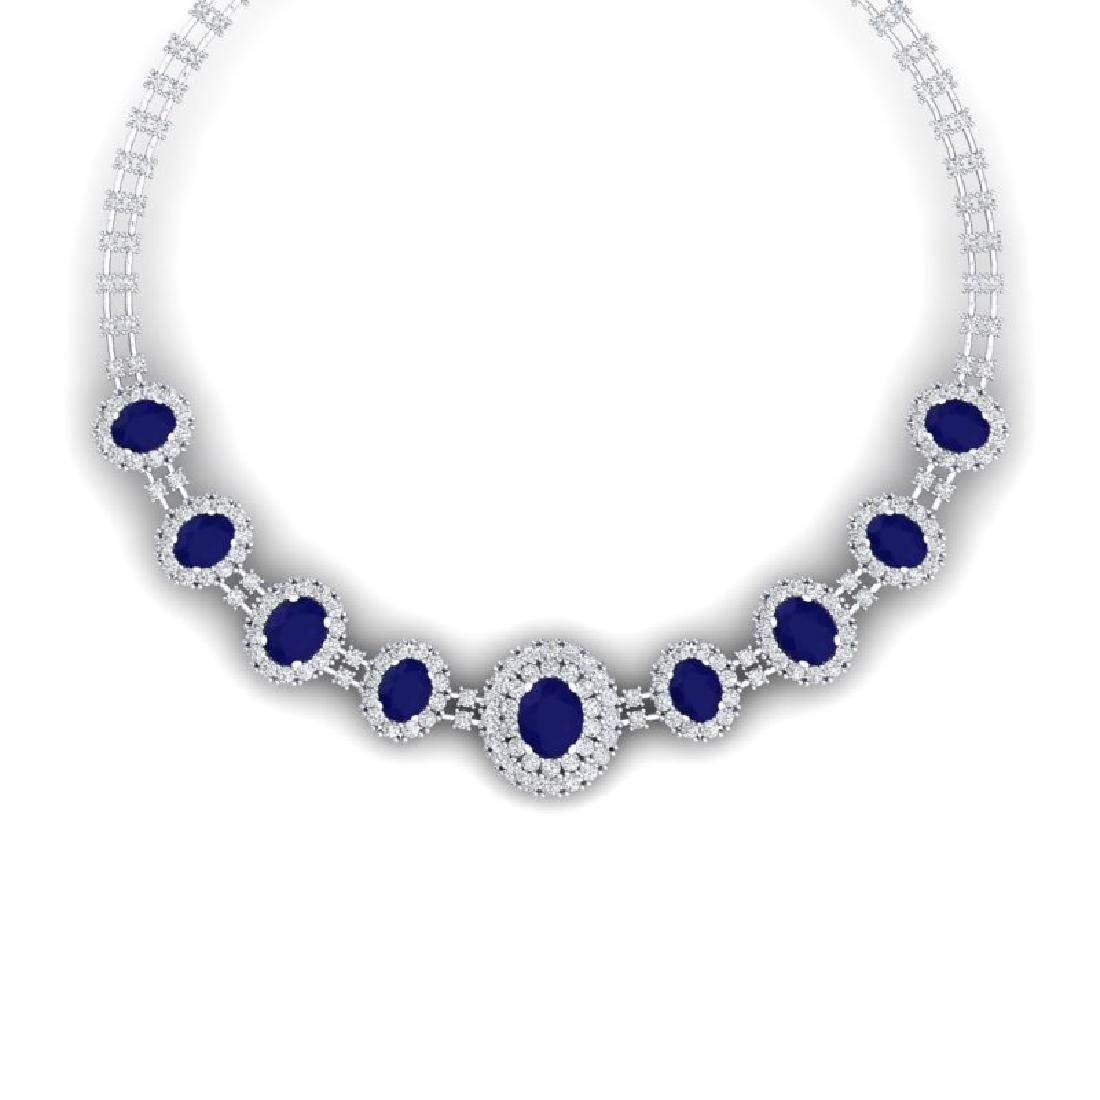 45.69 CTW Royalty Sapphire & VS Diamond Necklace 18K